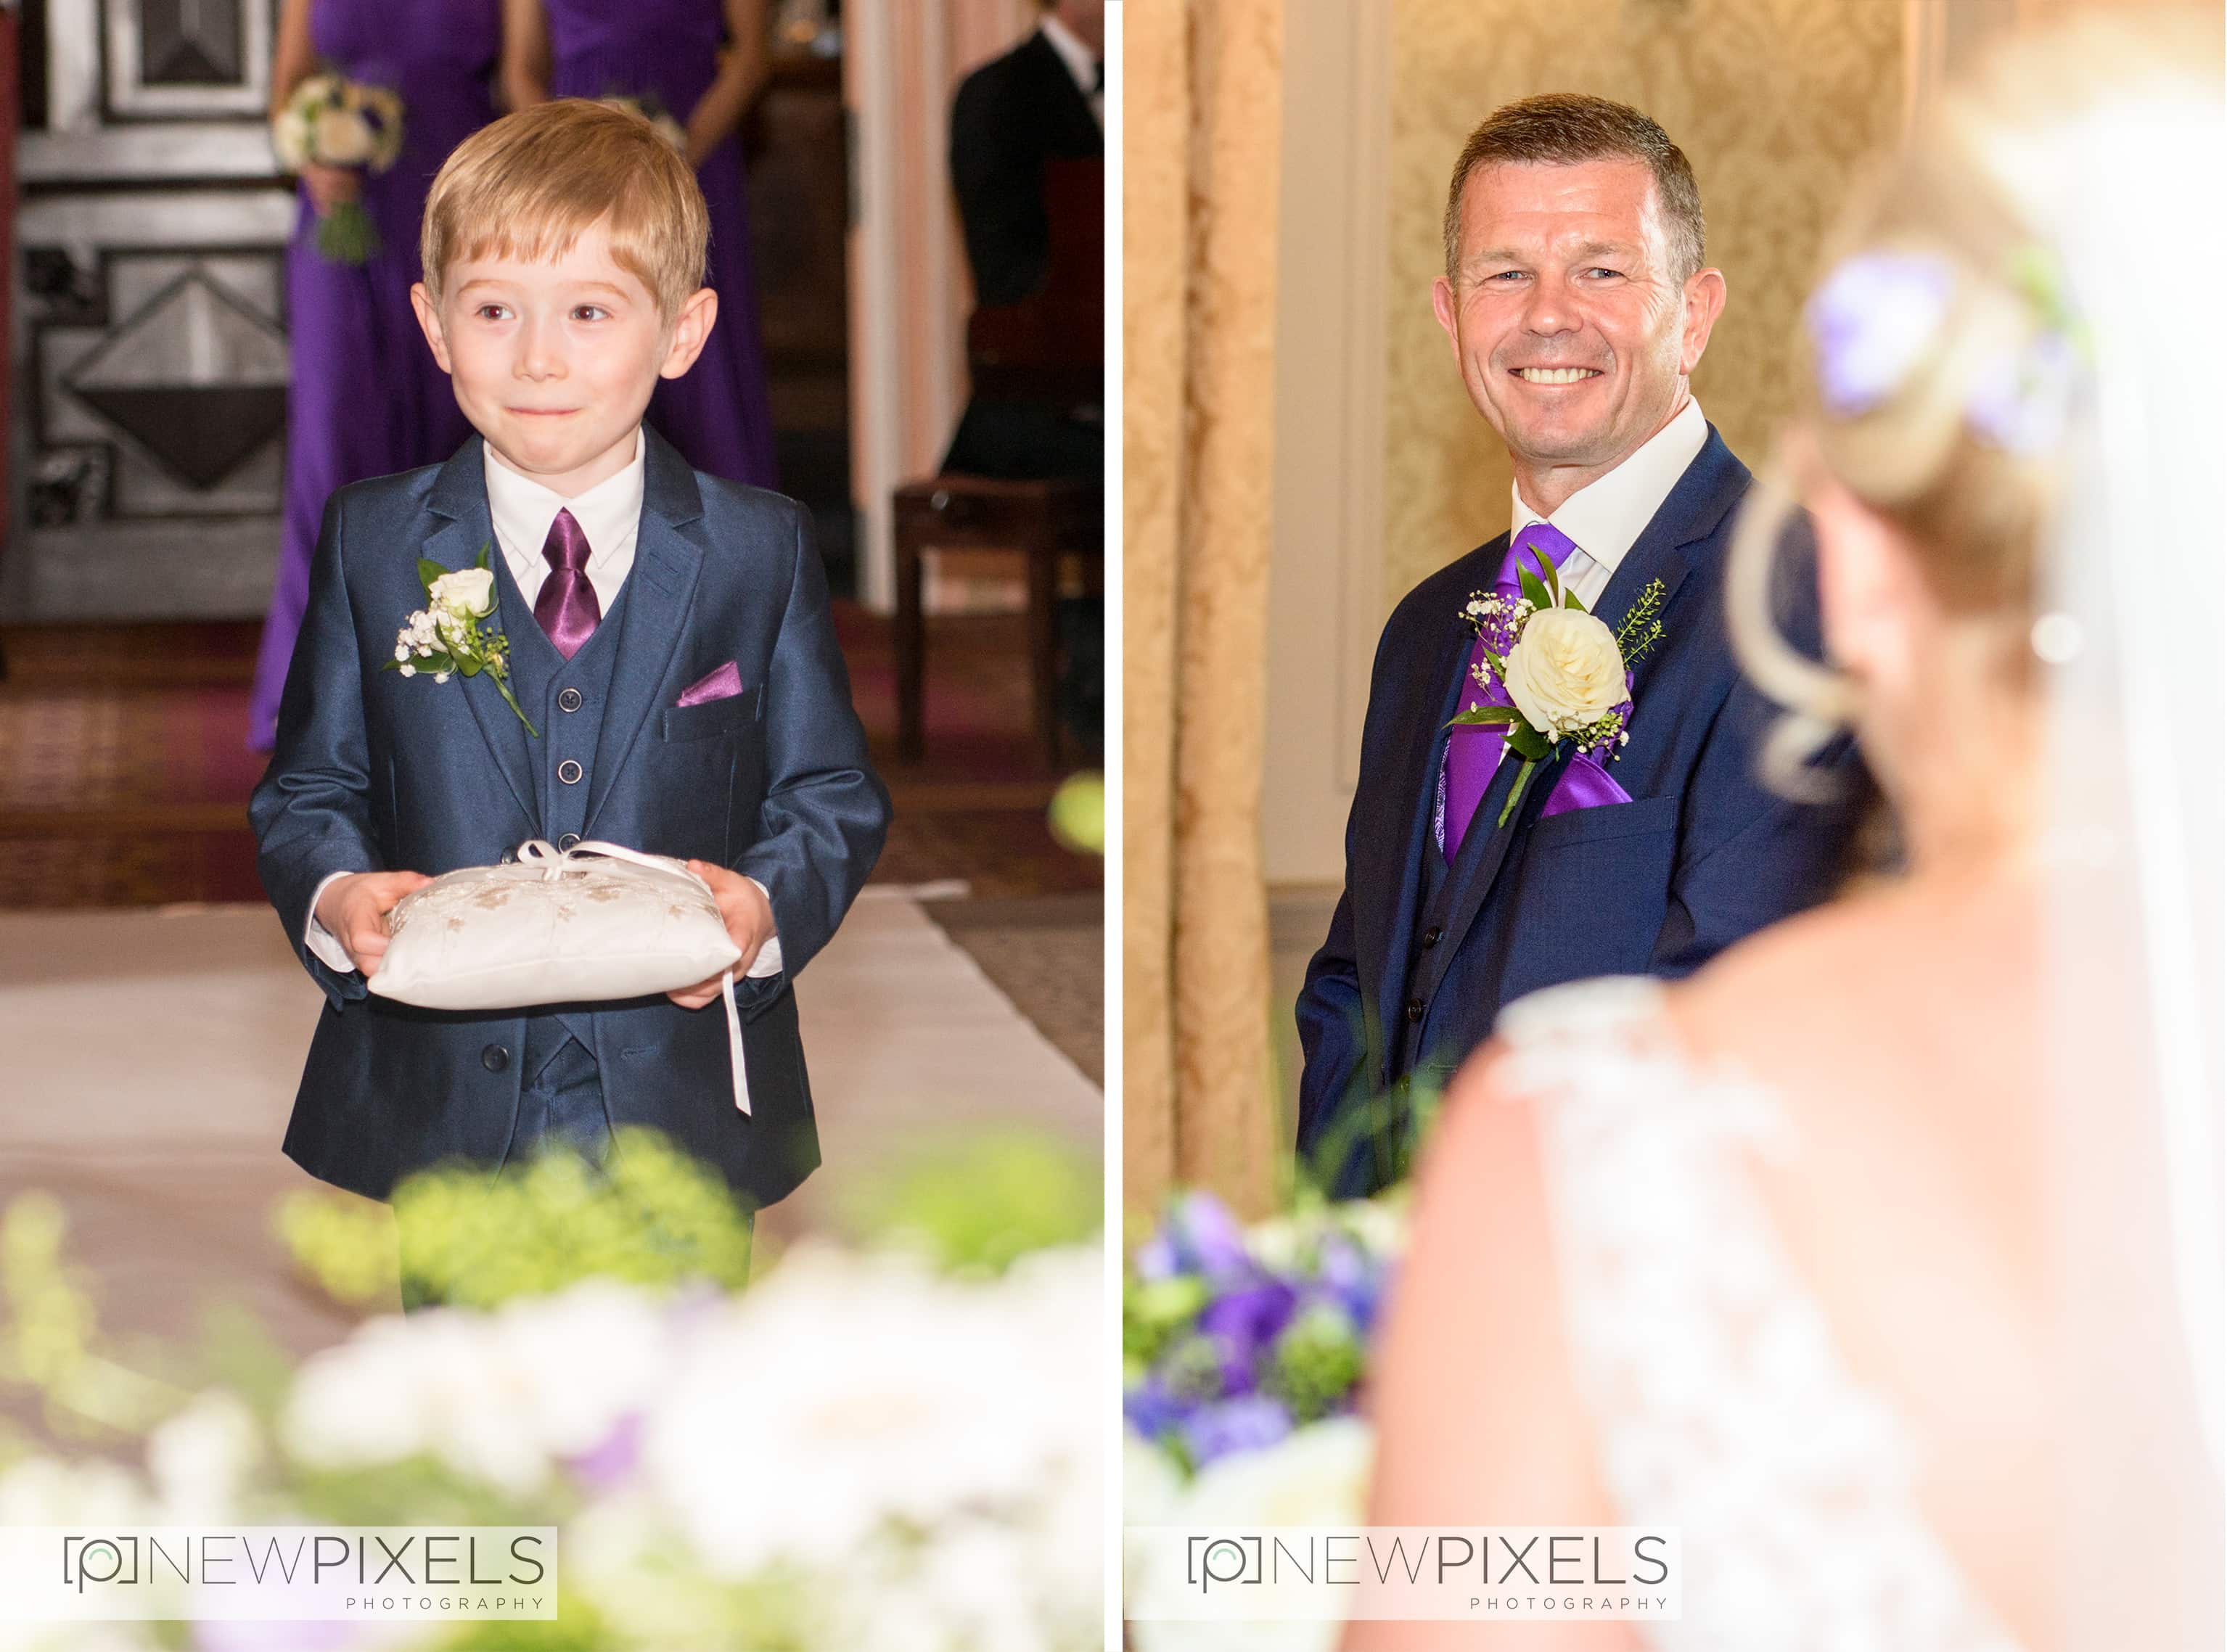 downhall wedding photographer20